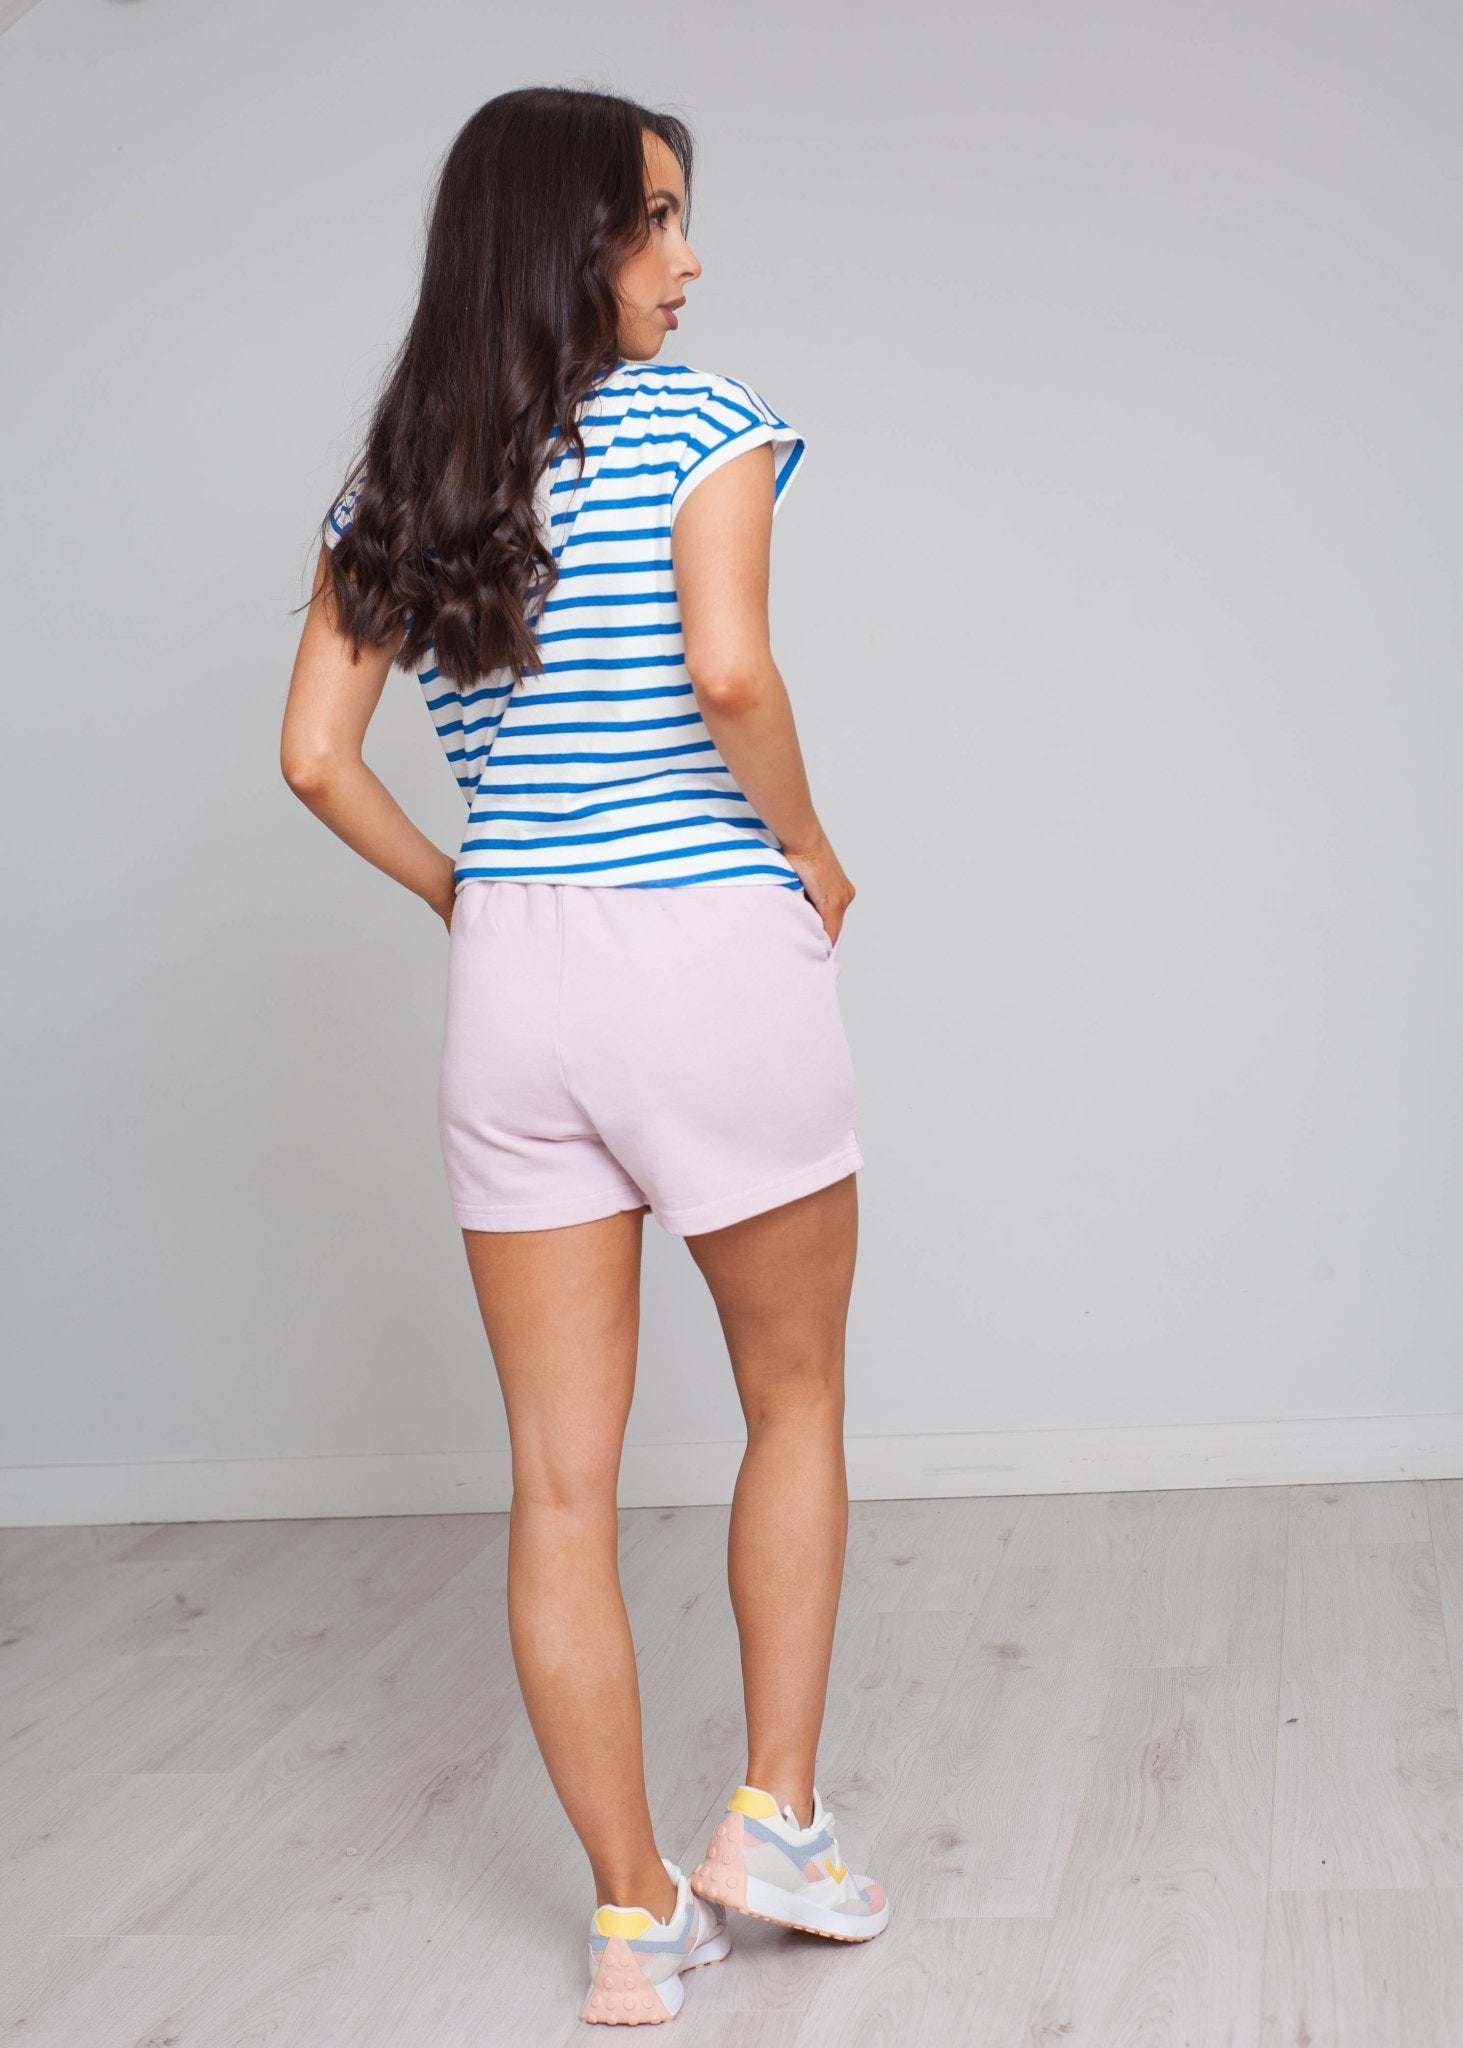 Laura Shorts In Blush - The Walk in Wardrobe